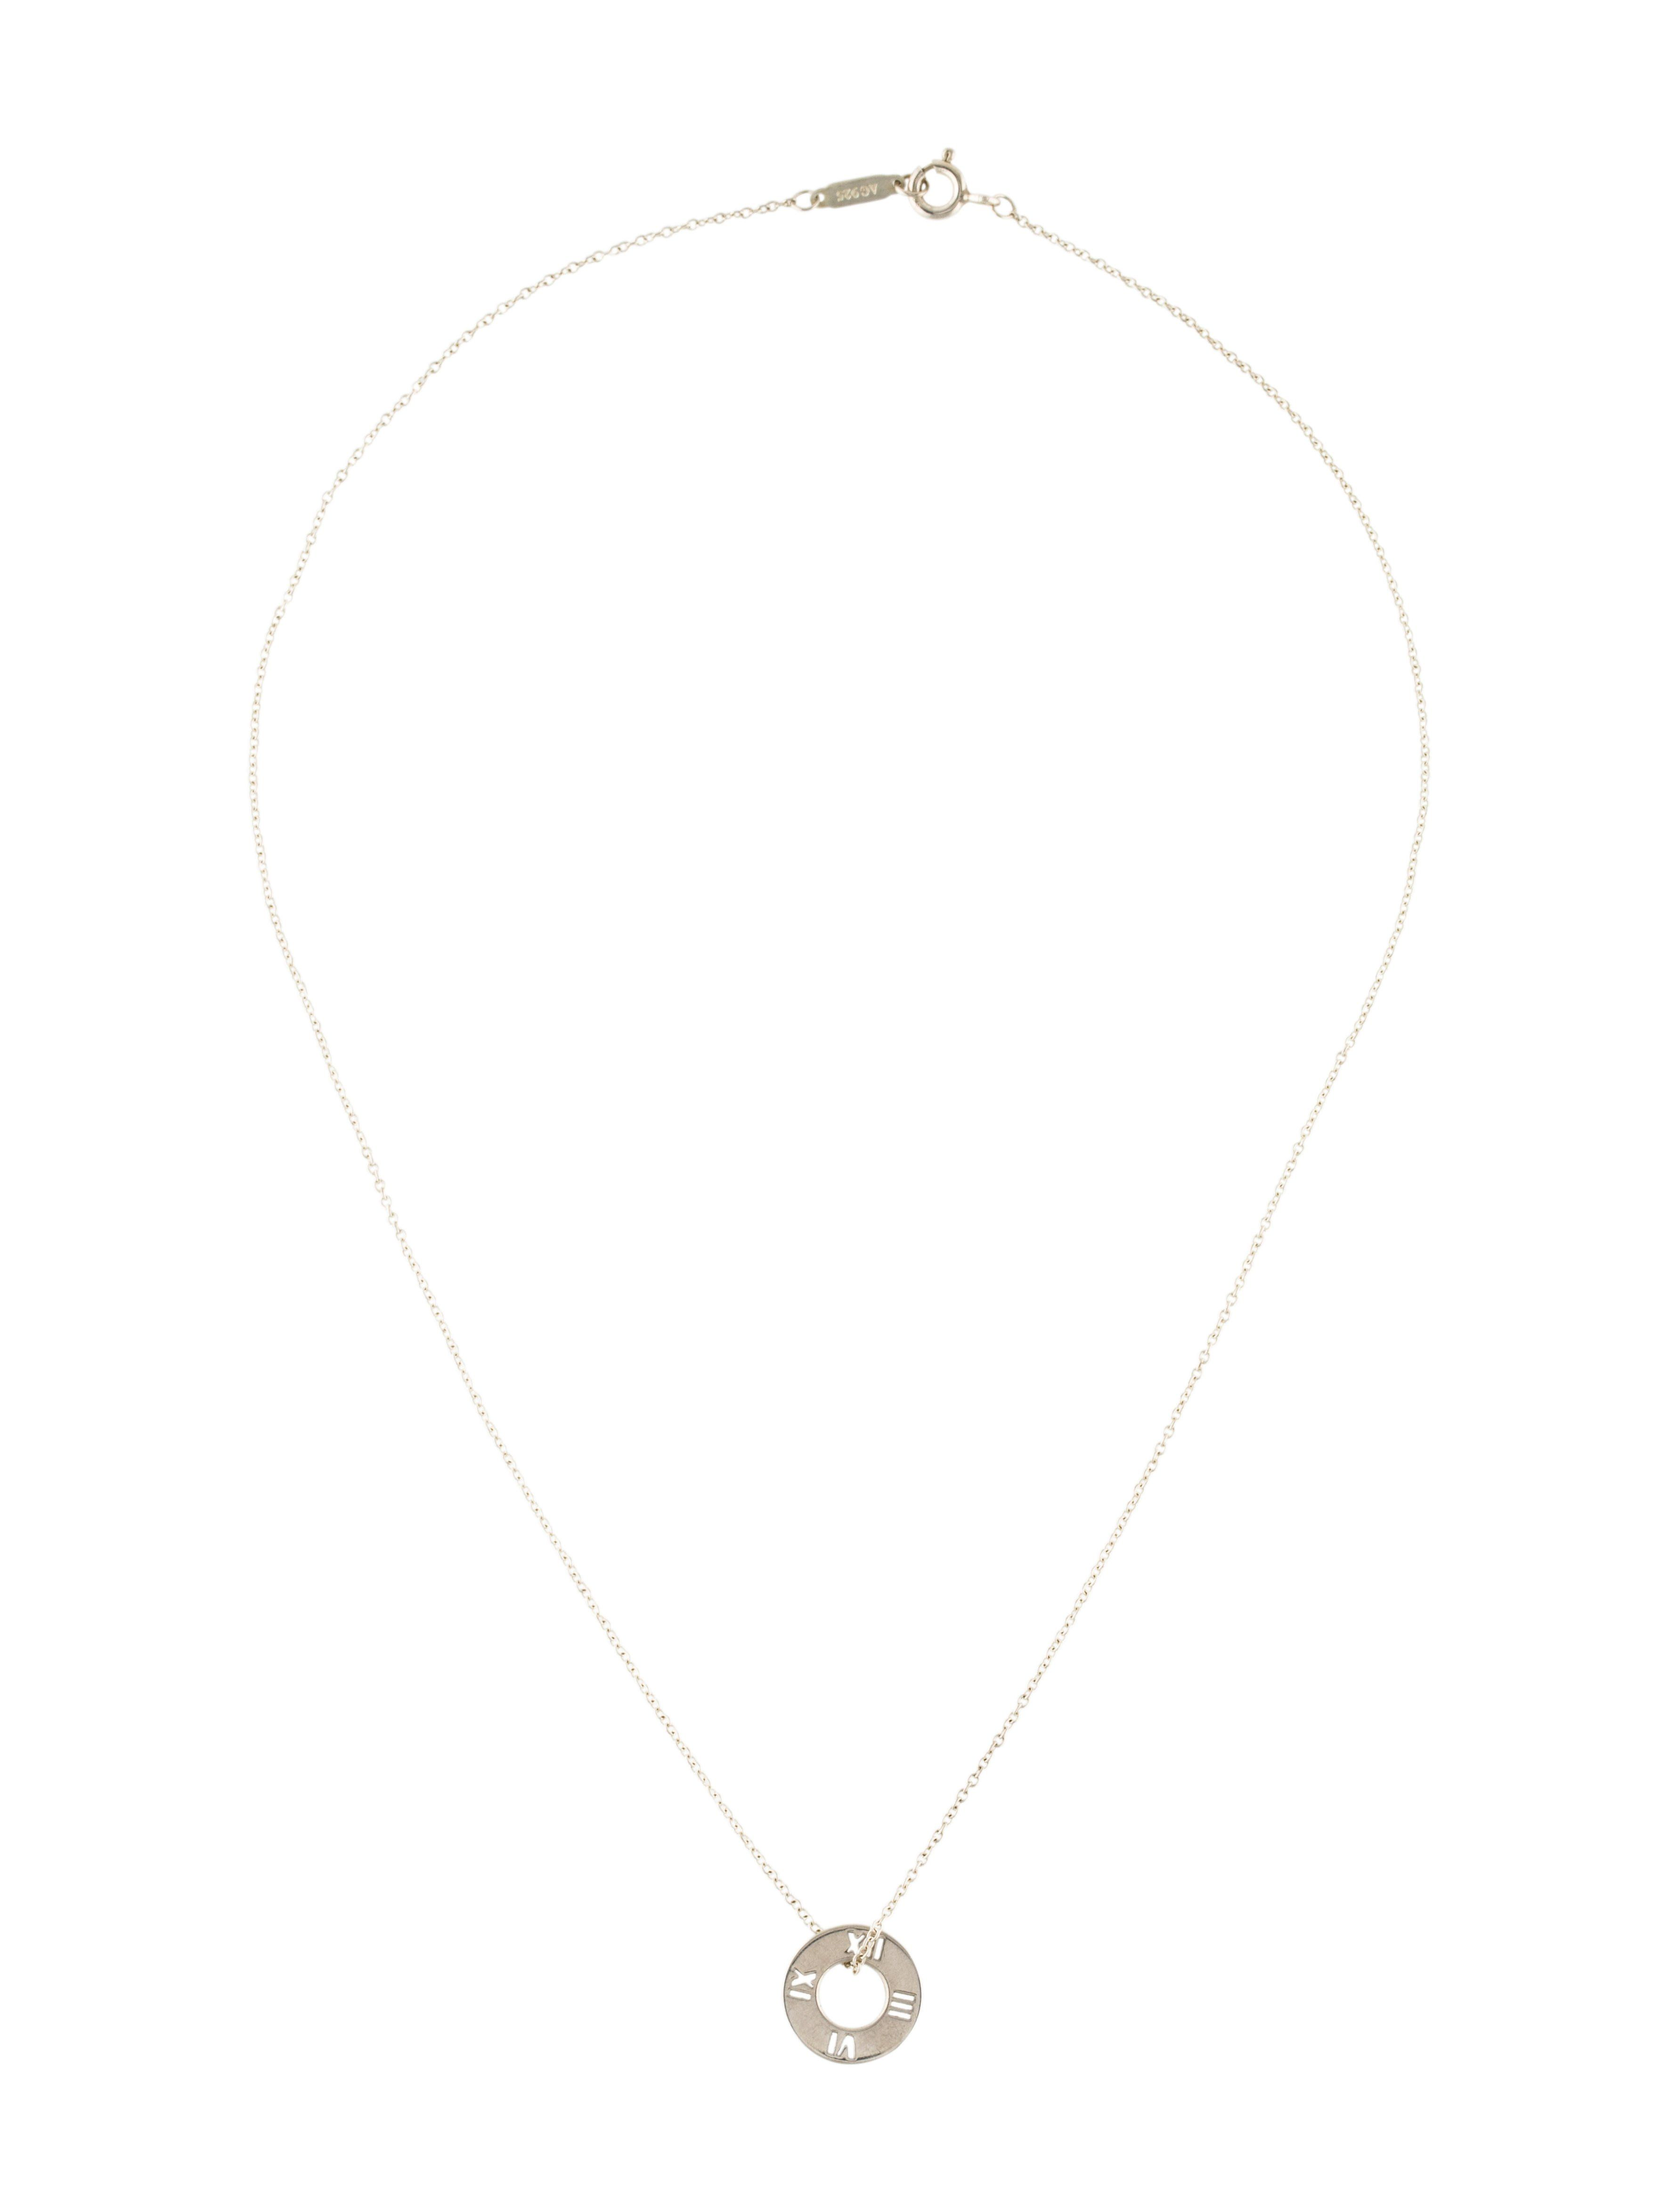 d1cbb0eac Sterling silver Tiffany & Co. Atlas Pierced pendant necklace featuring  engraved Roman numeral motifs at removable round pendant, rolo chain and  spring rin